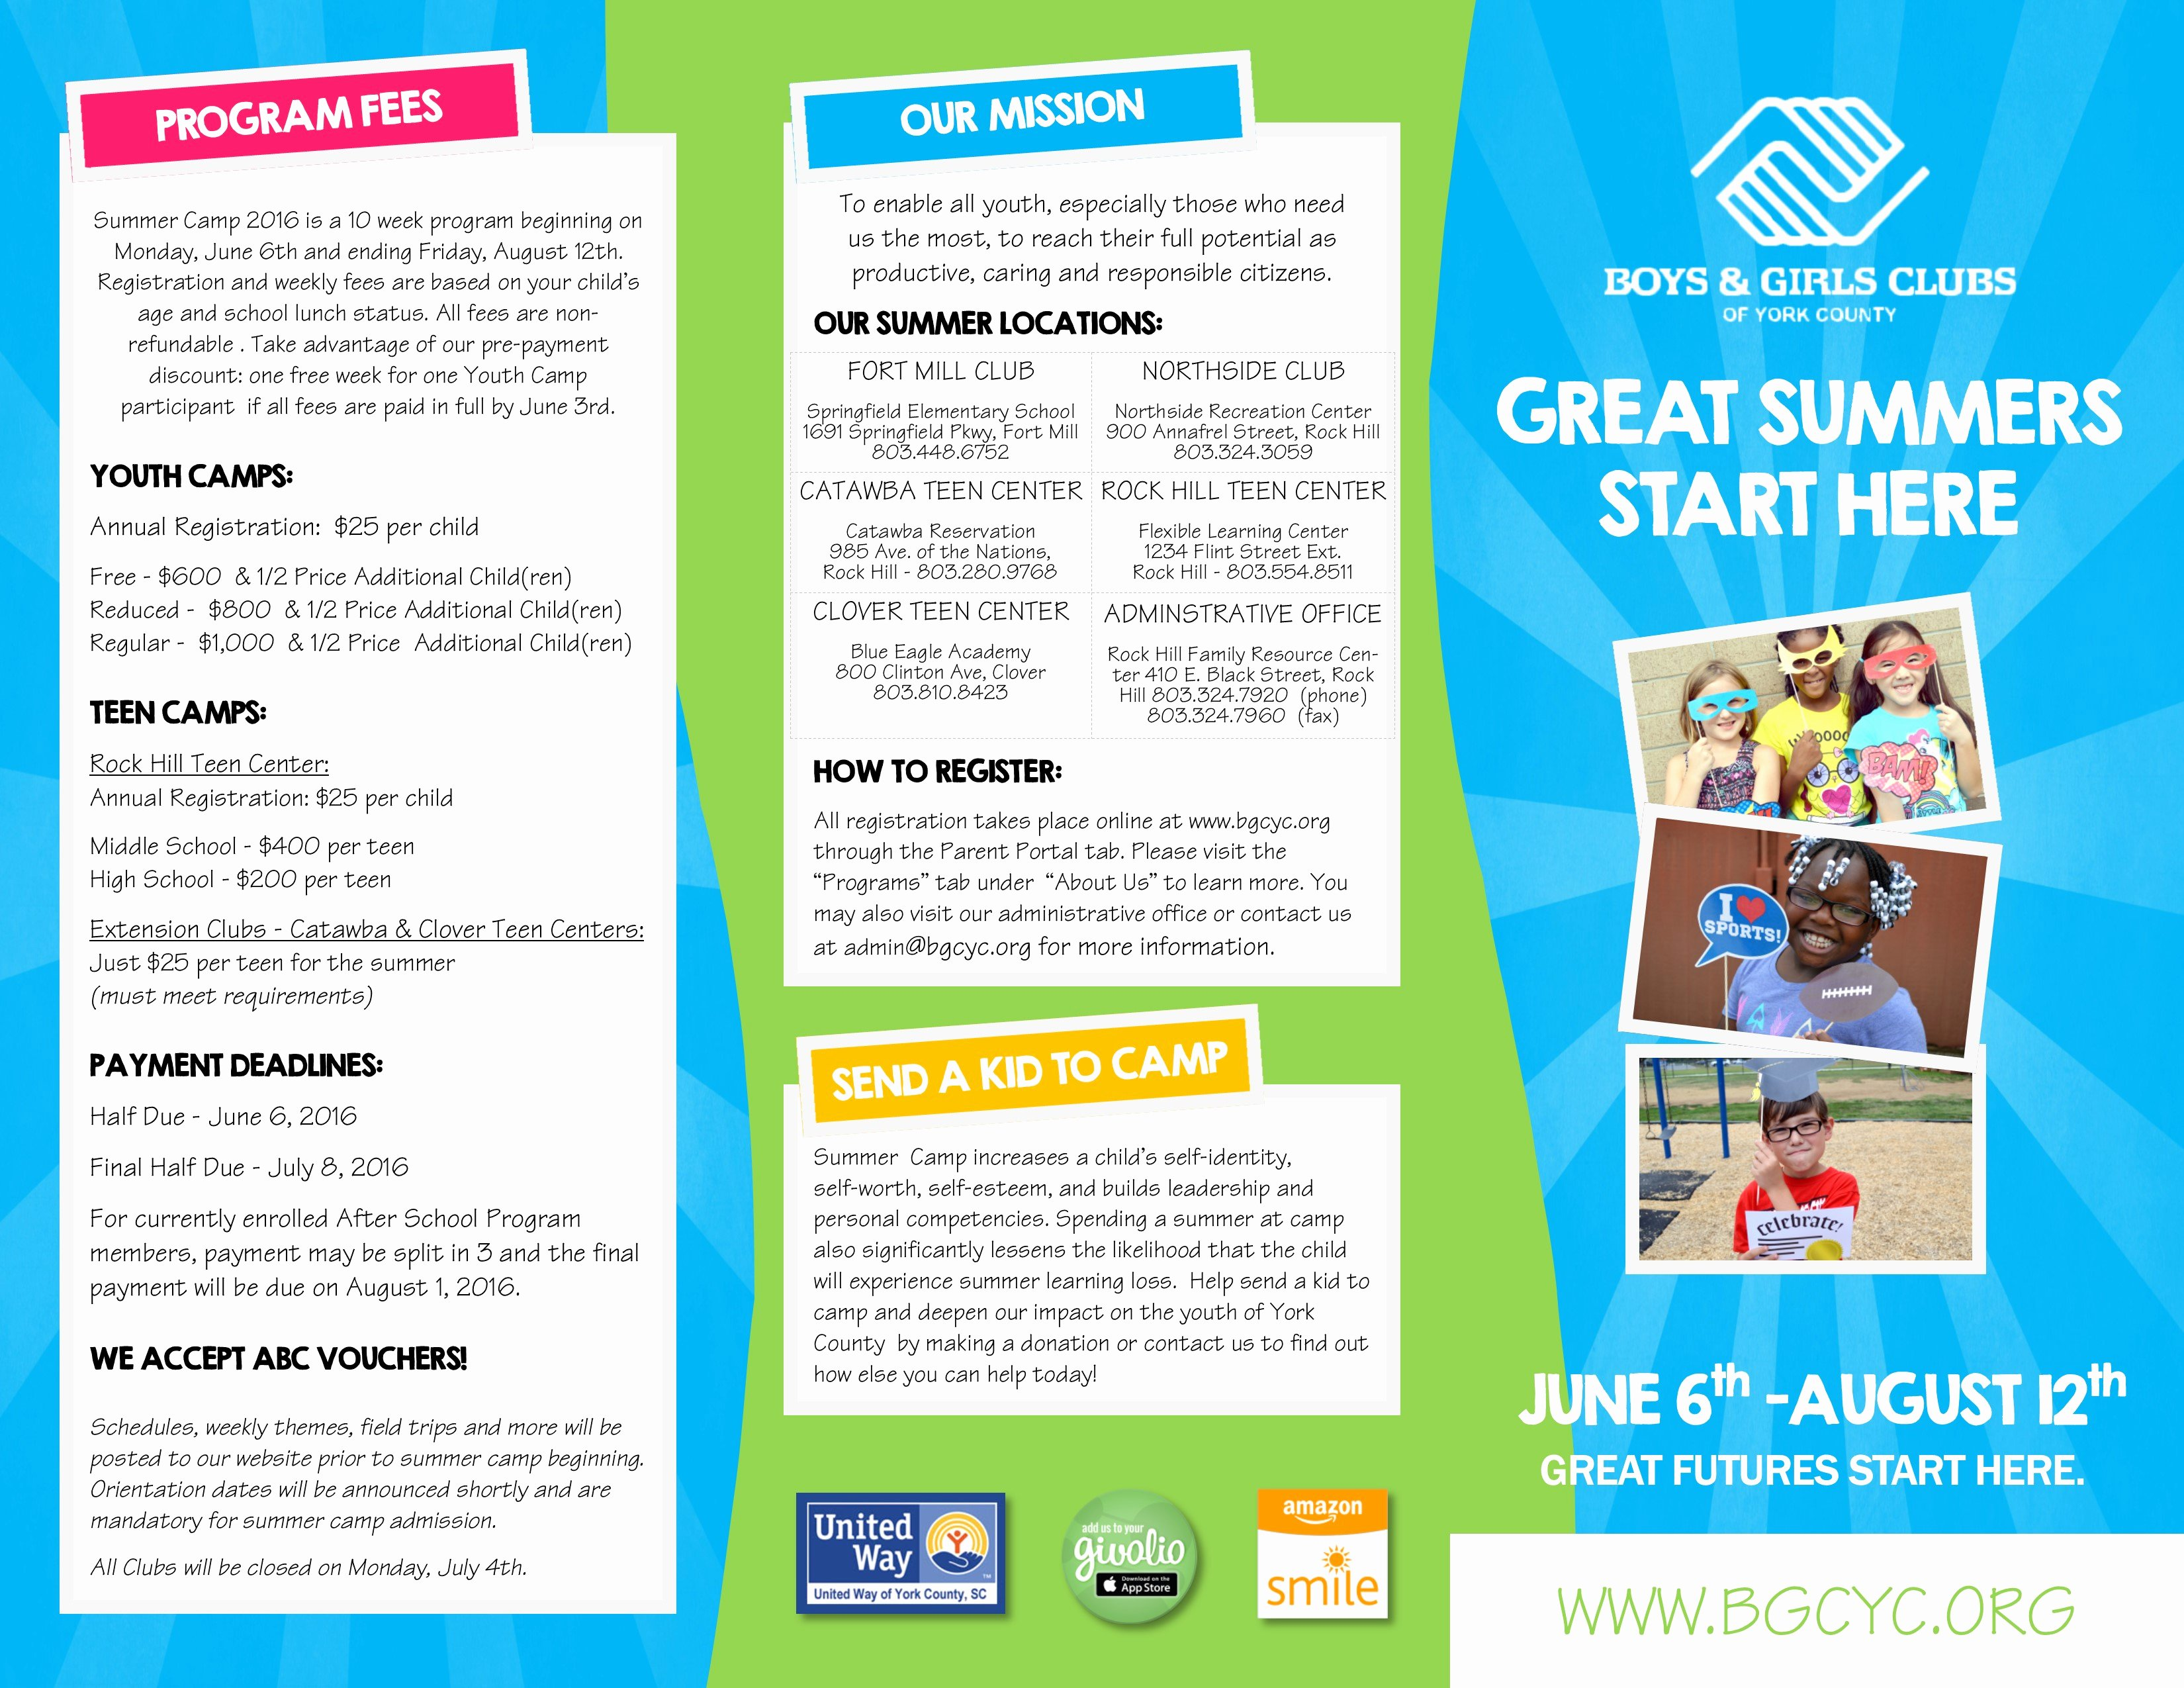 Summer Camp Brochure Ideas Inspirational News & events Boys & Girls Club Of York County